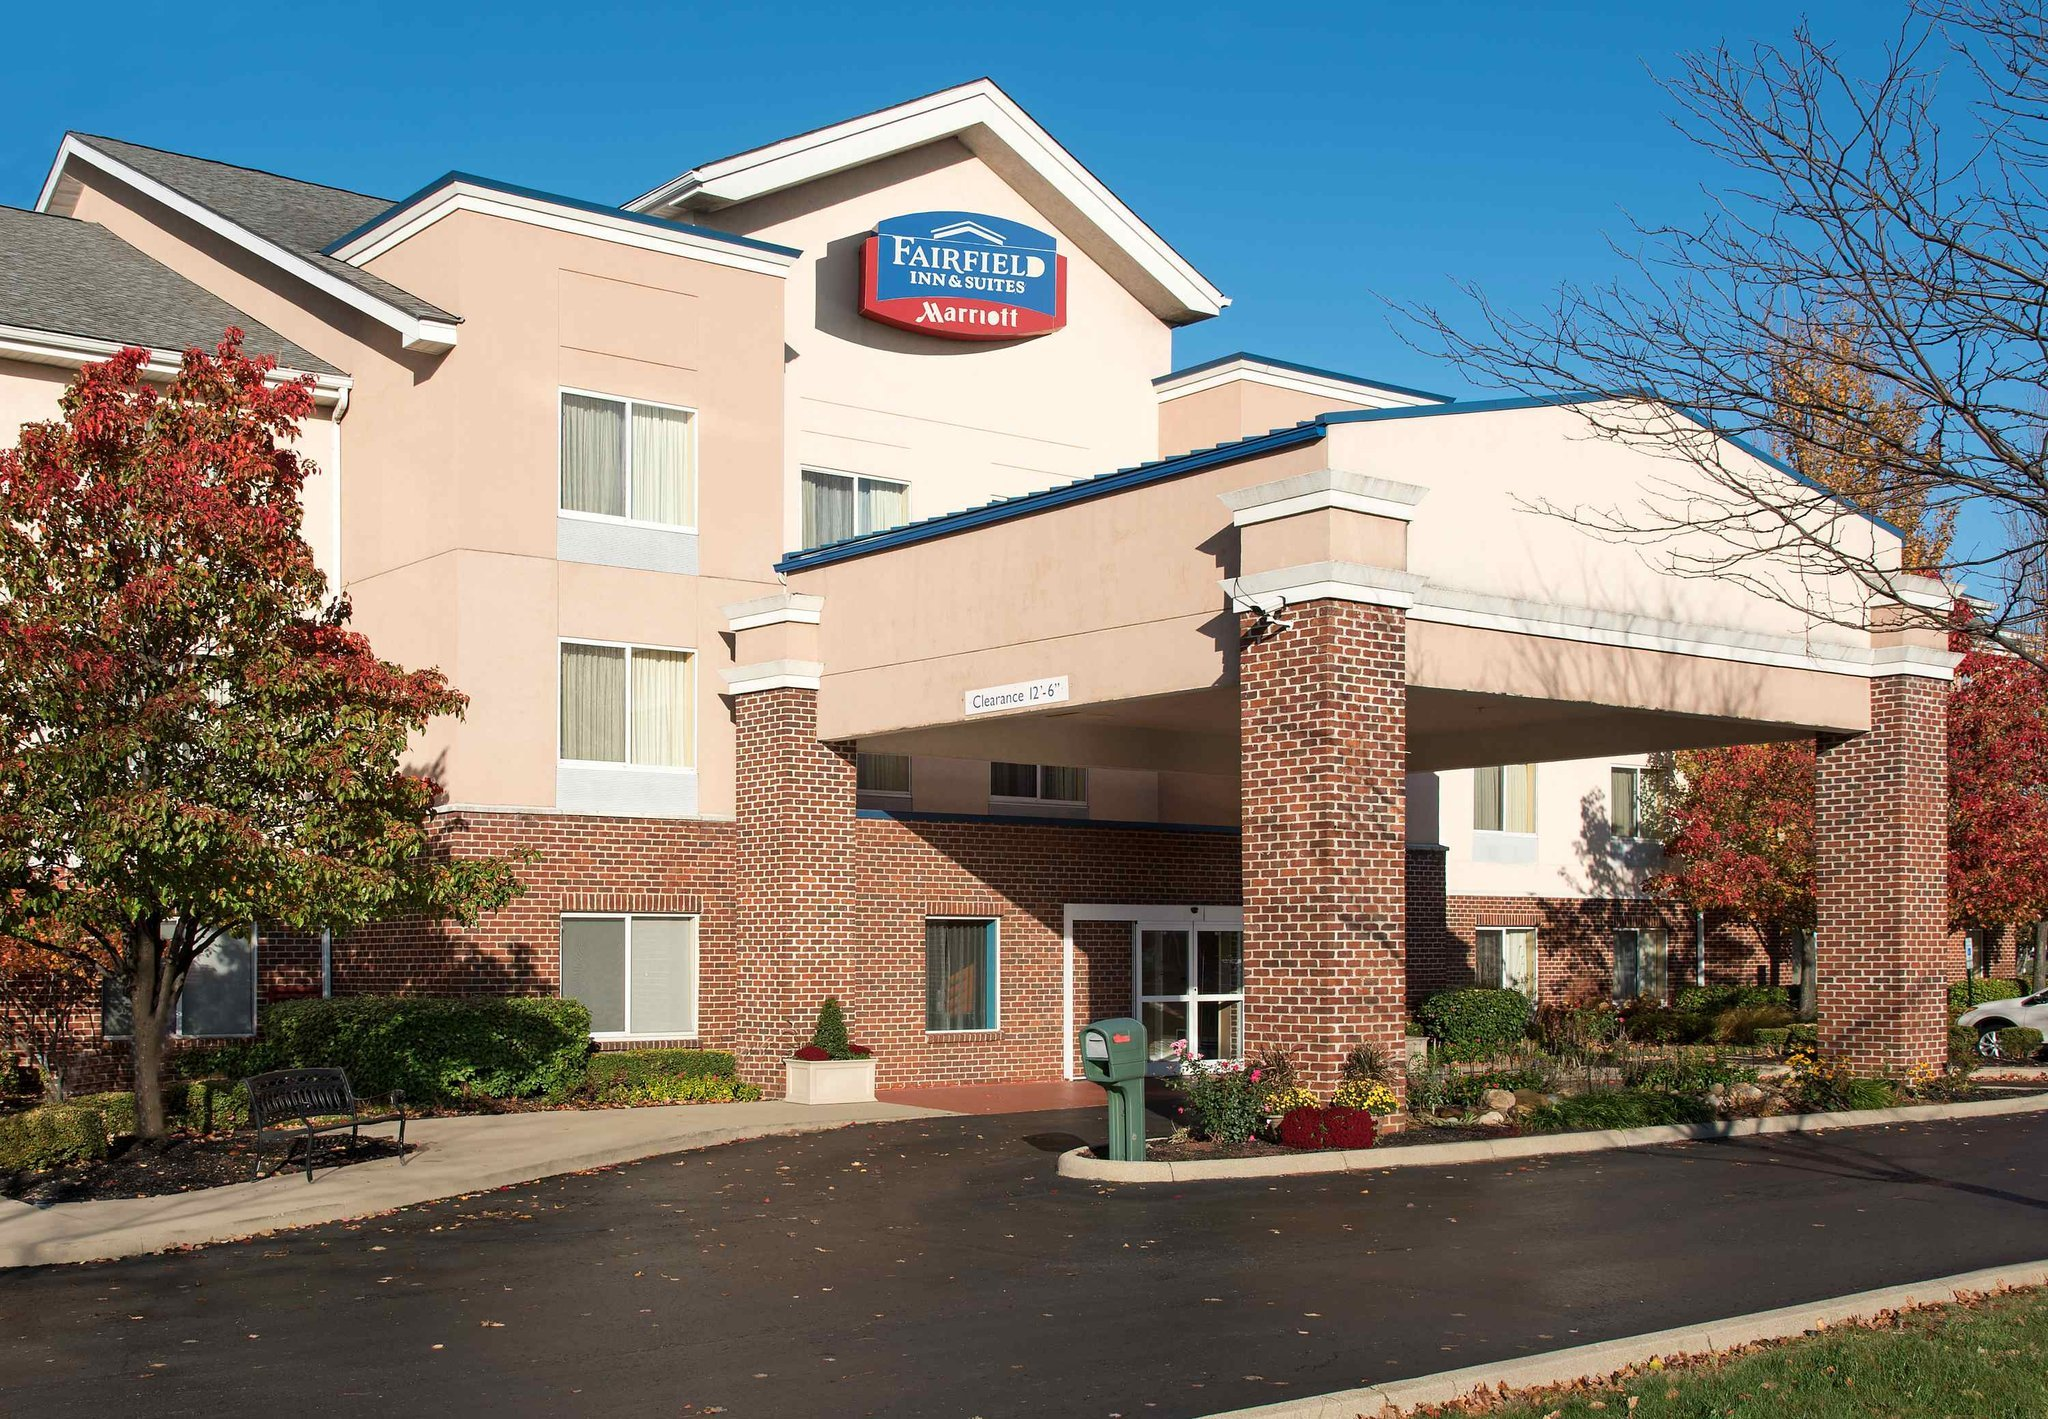 fairfield inn suites columbus east updated hotel reviews fairfield inn amp suites columbus east